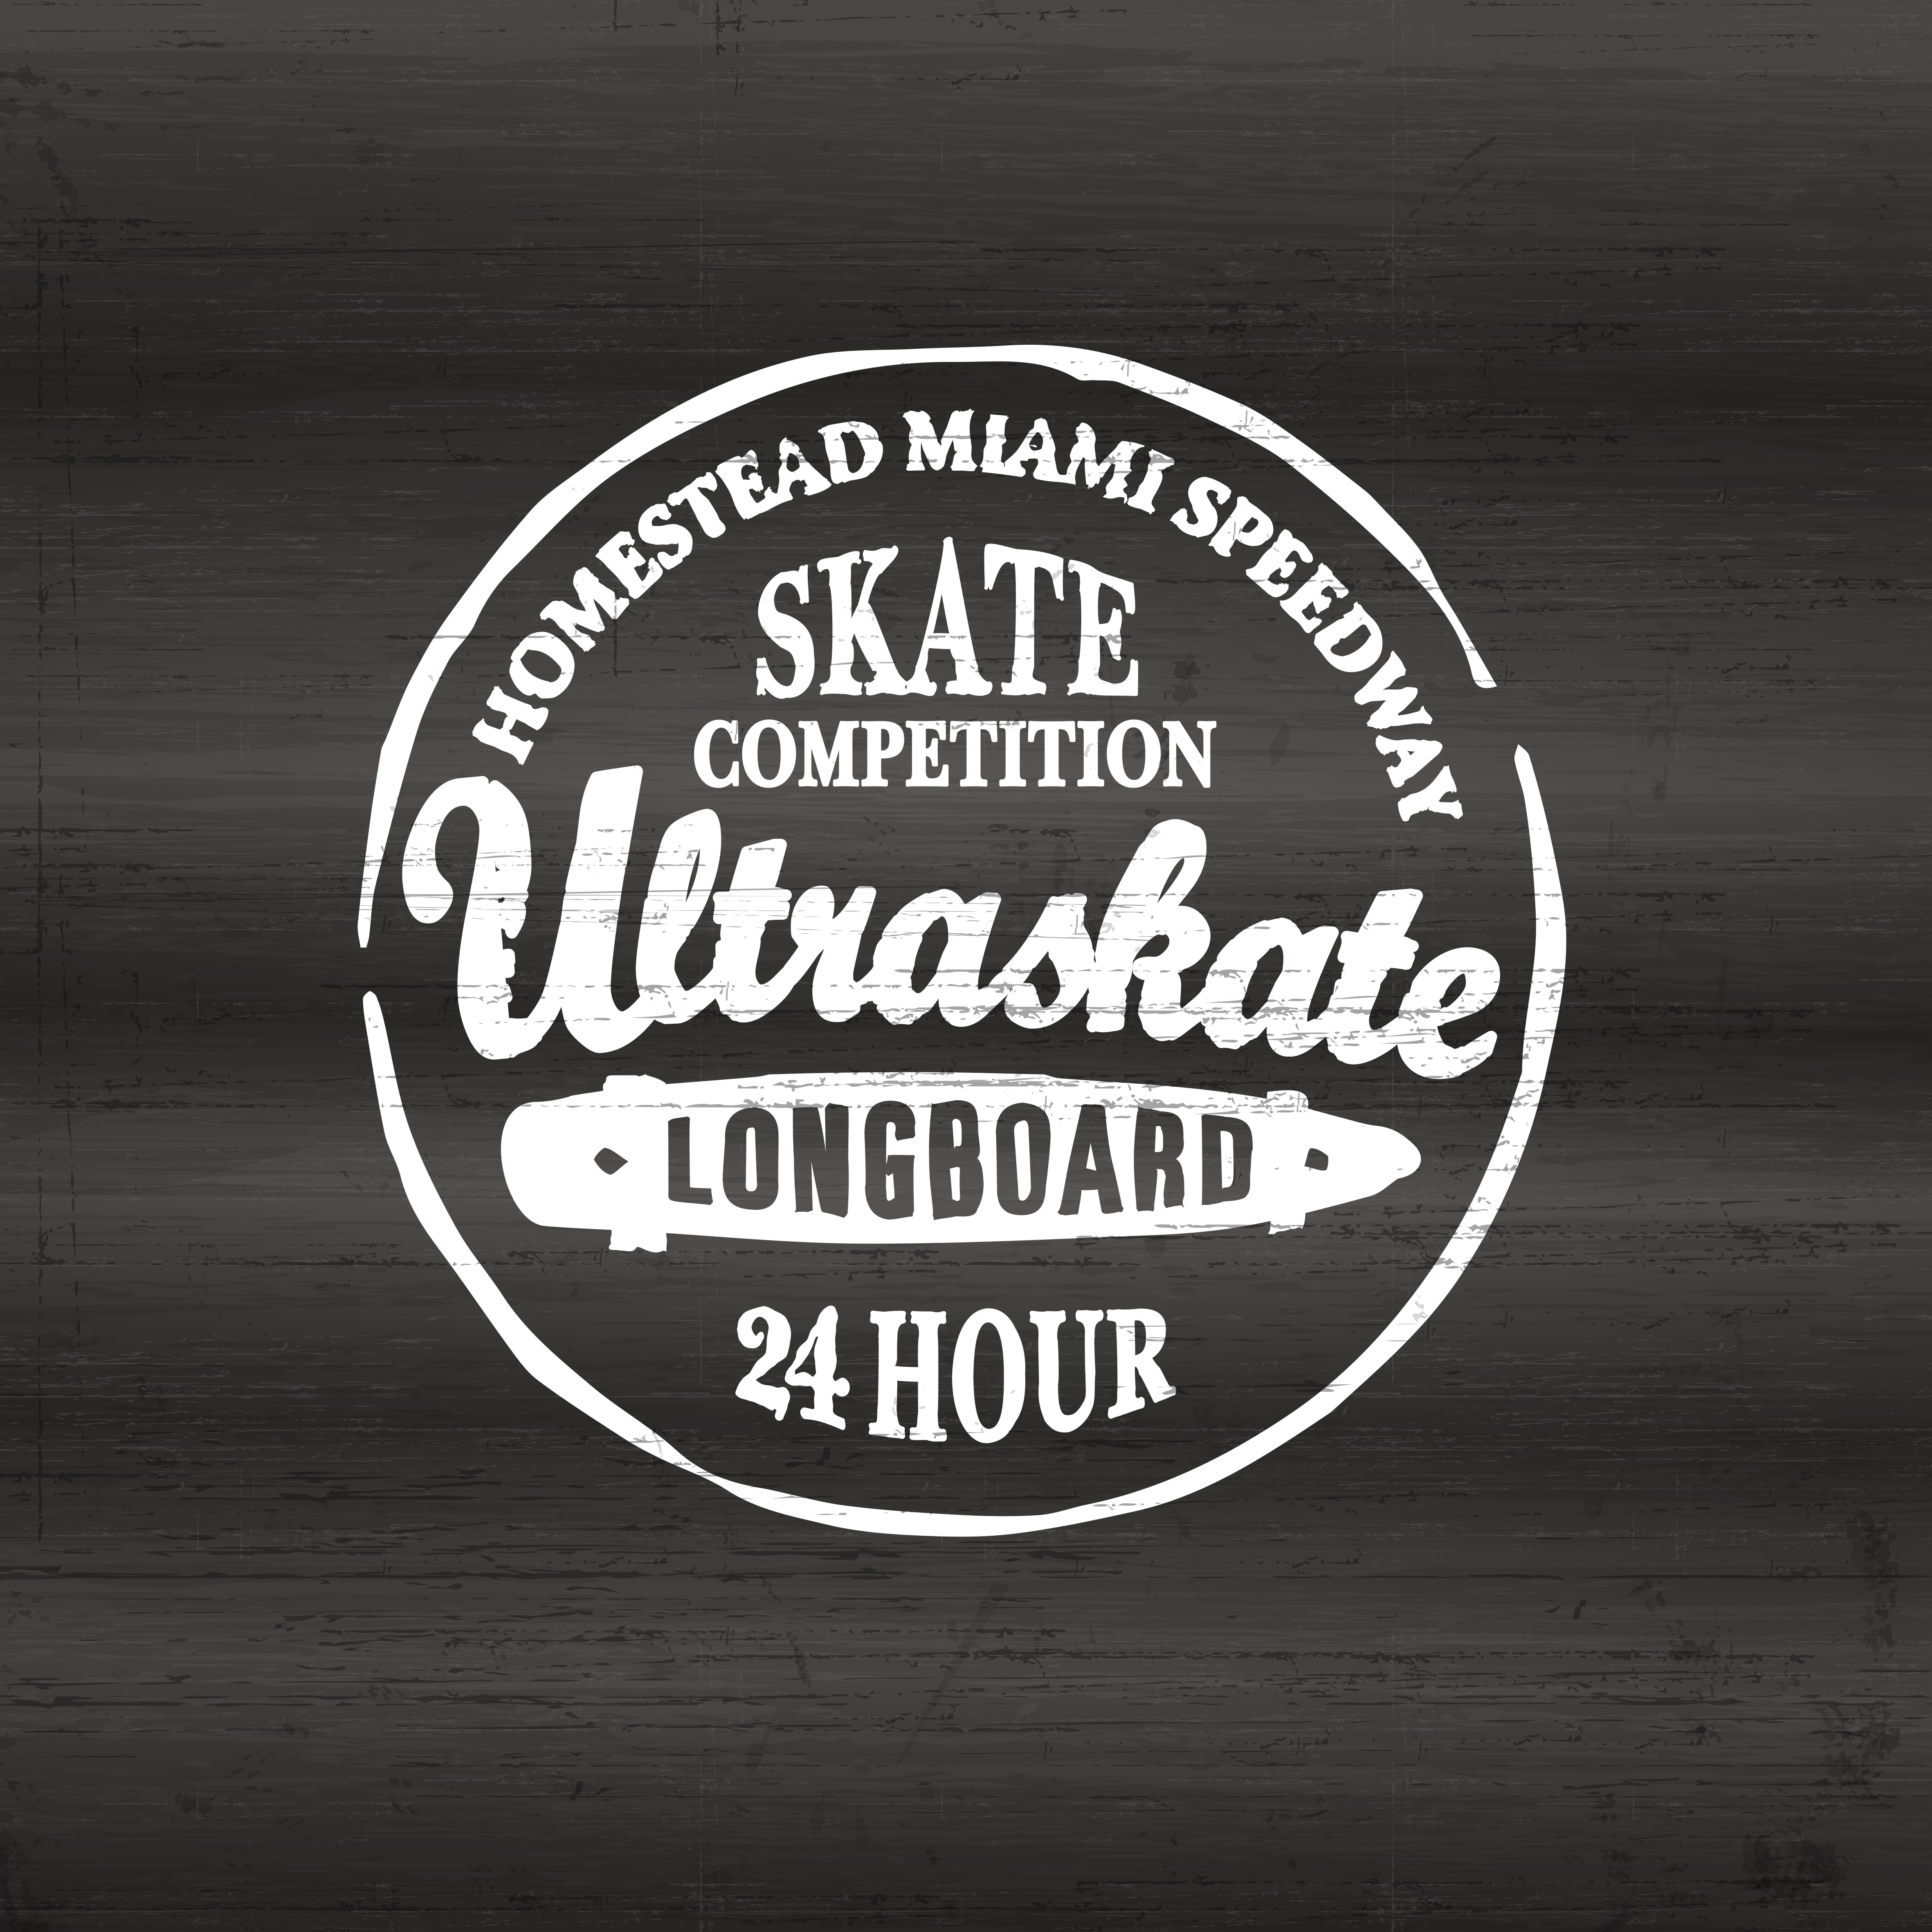 Ultraskate Miami 2018